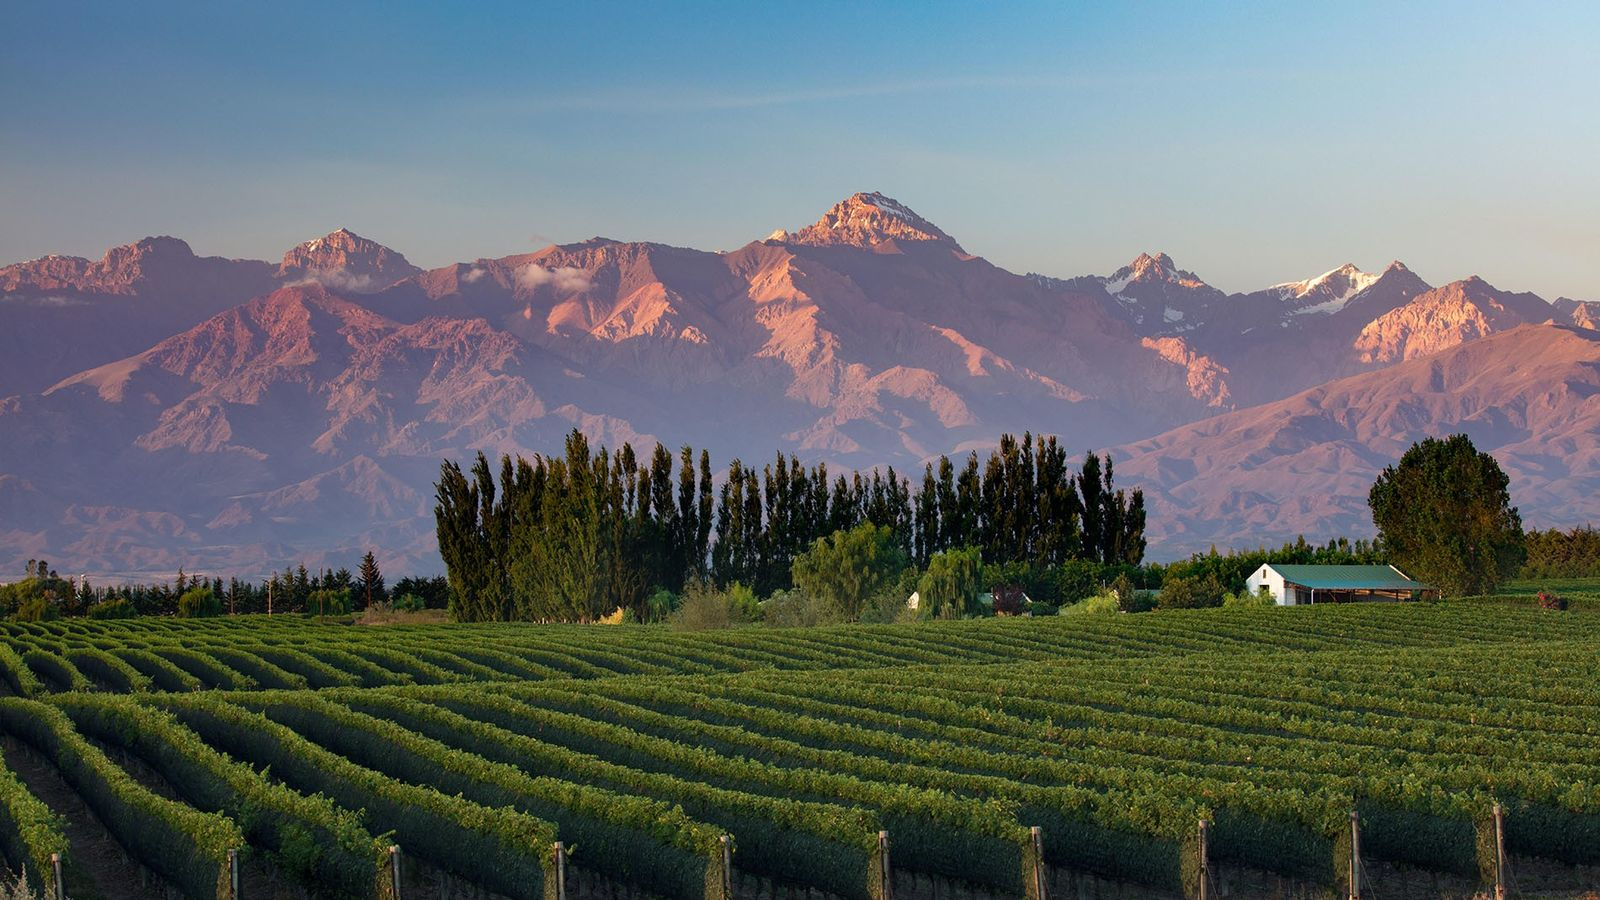 Argentina is know for producing world-class varieties of grapes at high-altitude vineyards in the Uco Valley.